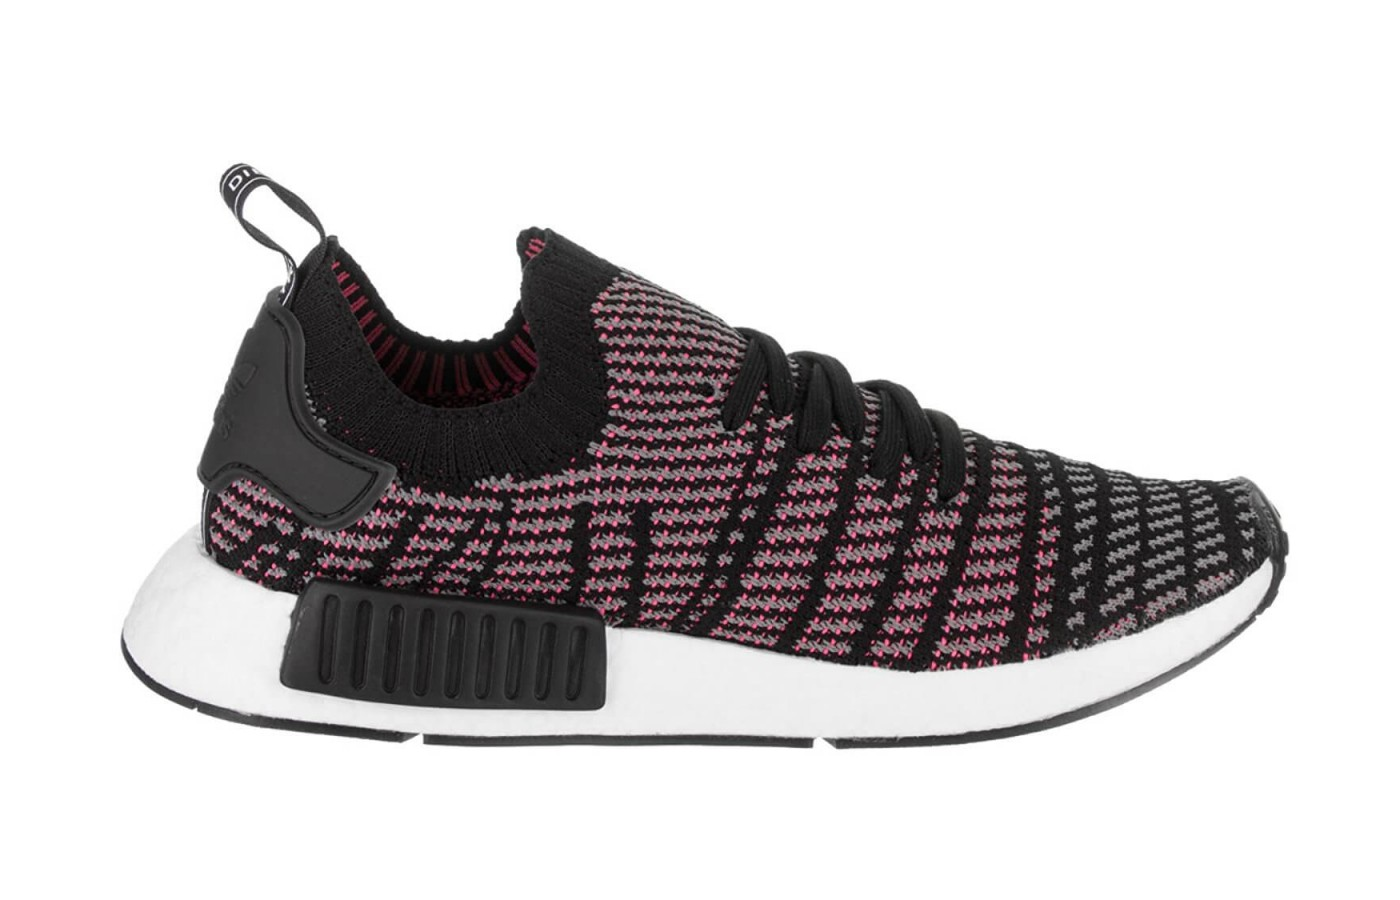 101348a673220 ... The Adidas NMD R1 Stlt Primeknit features a Boost midsole ...